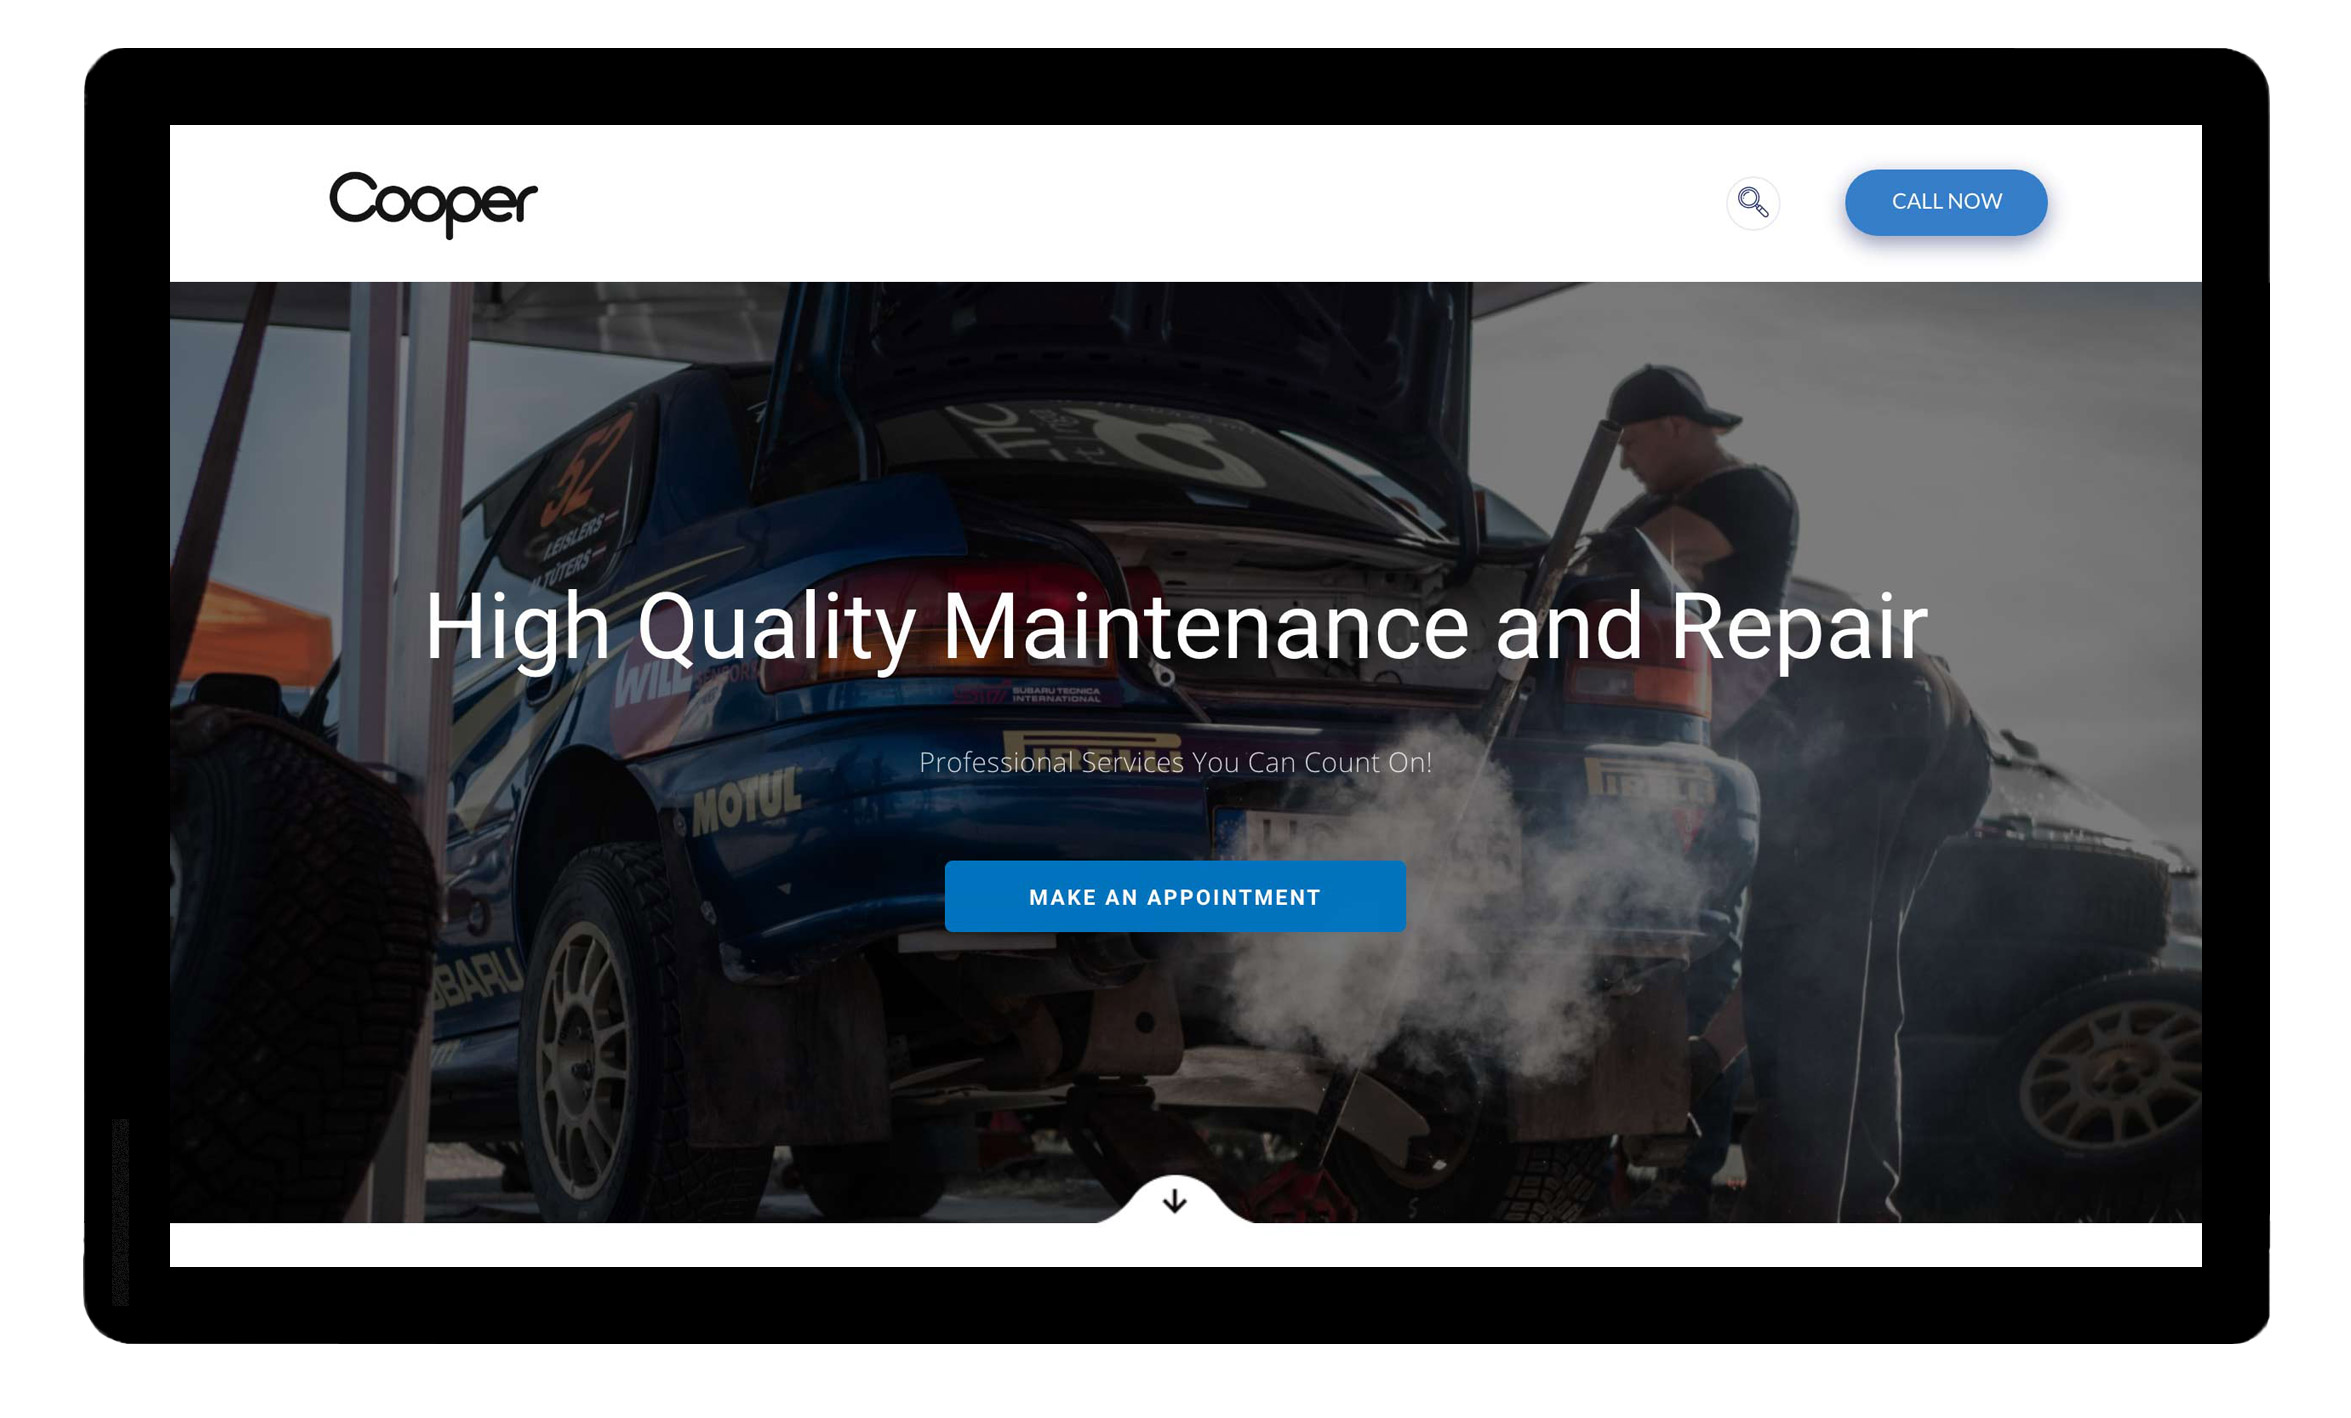 cooper-auto-repair-company-website-design-company-framed-web-2